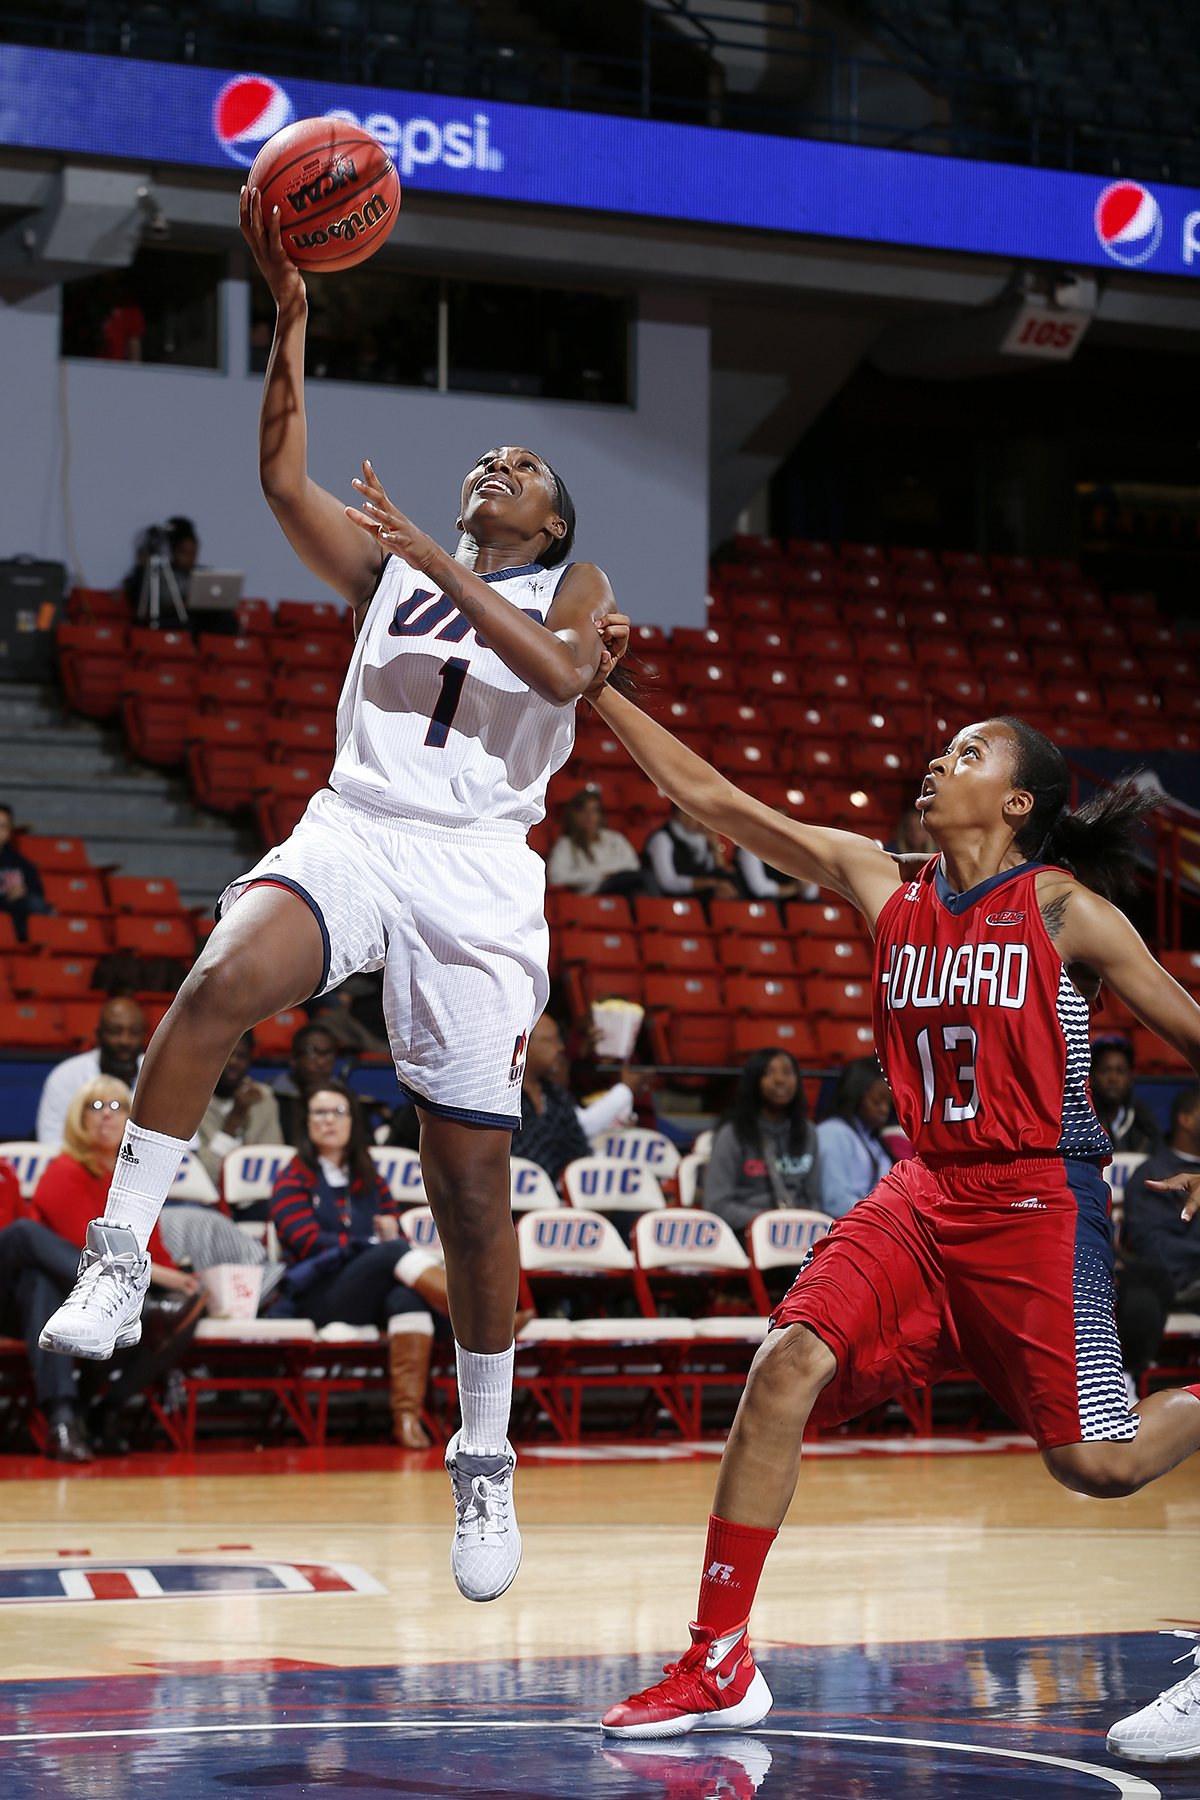 UIC women's basketball opens with up-tempo win over Howard ...